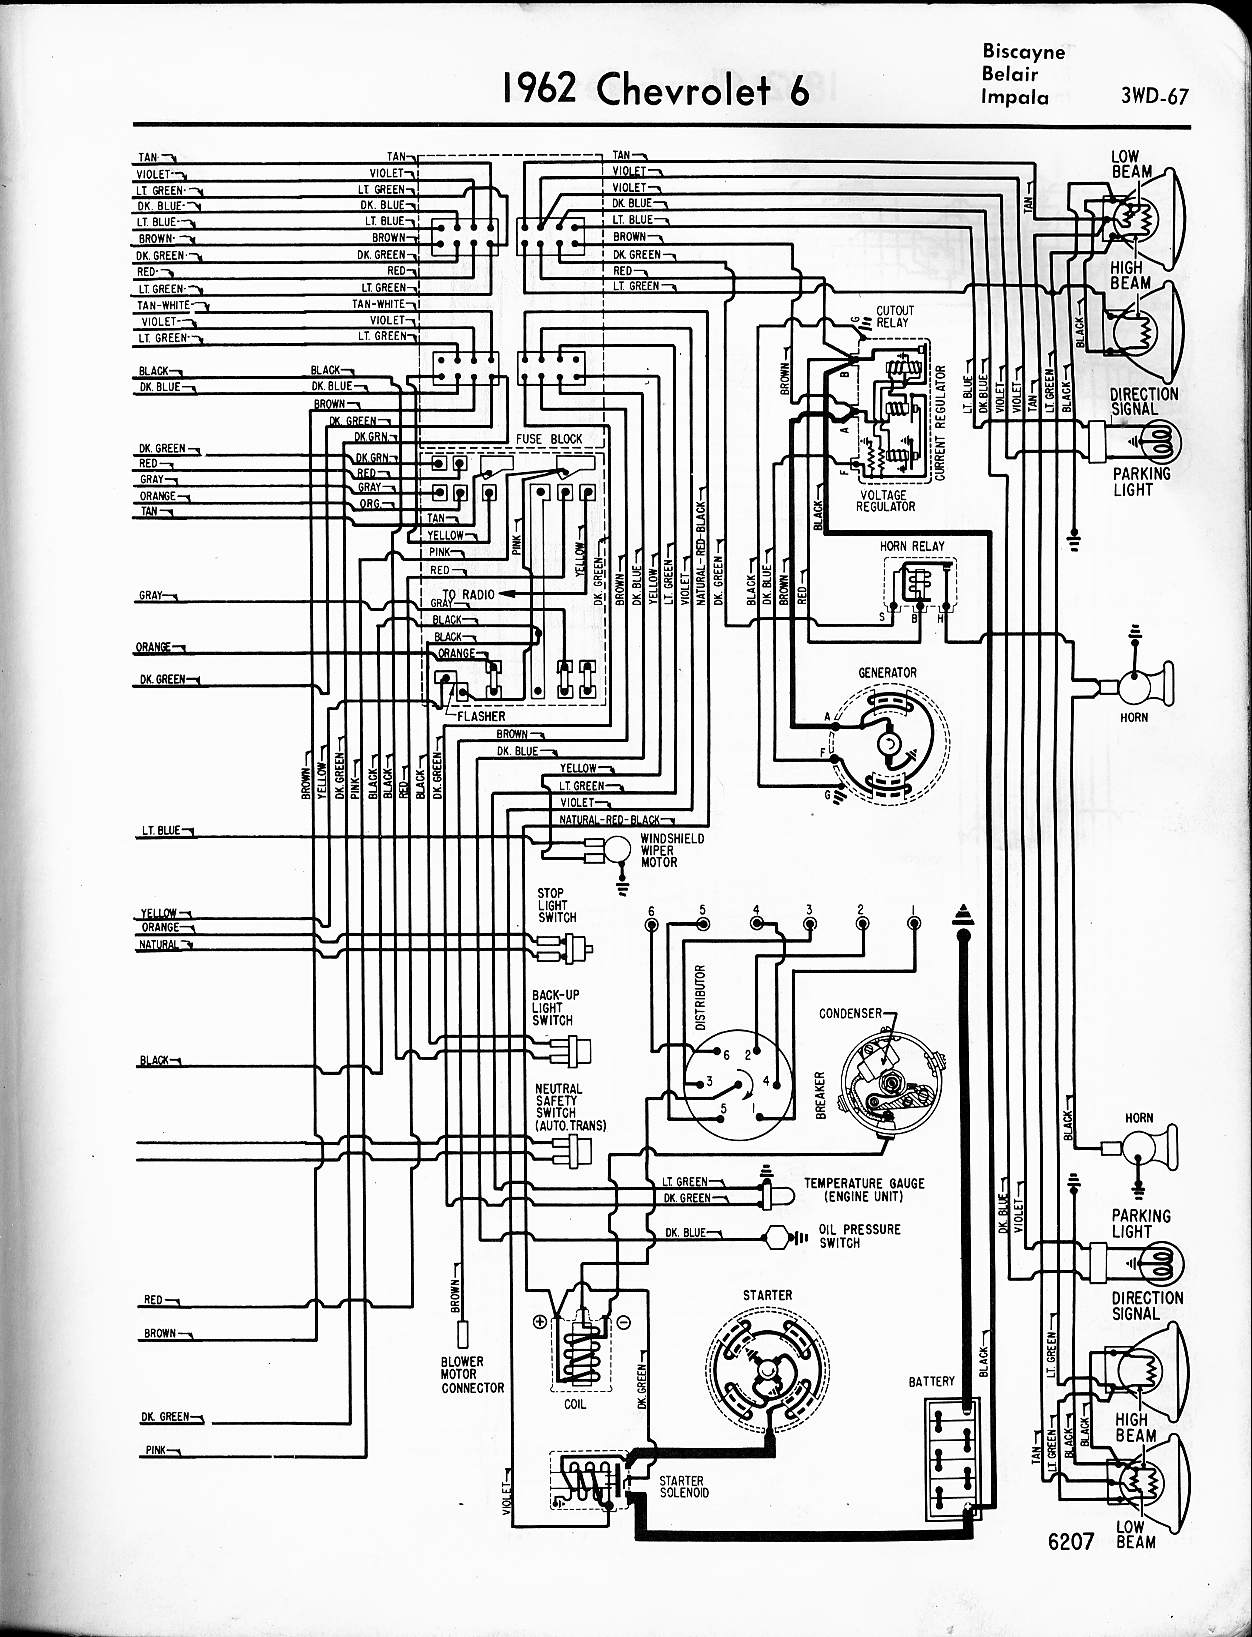 1965 impala heater switch wiring diagram schematic